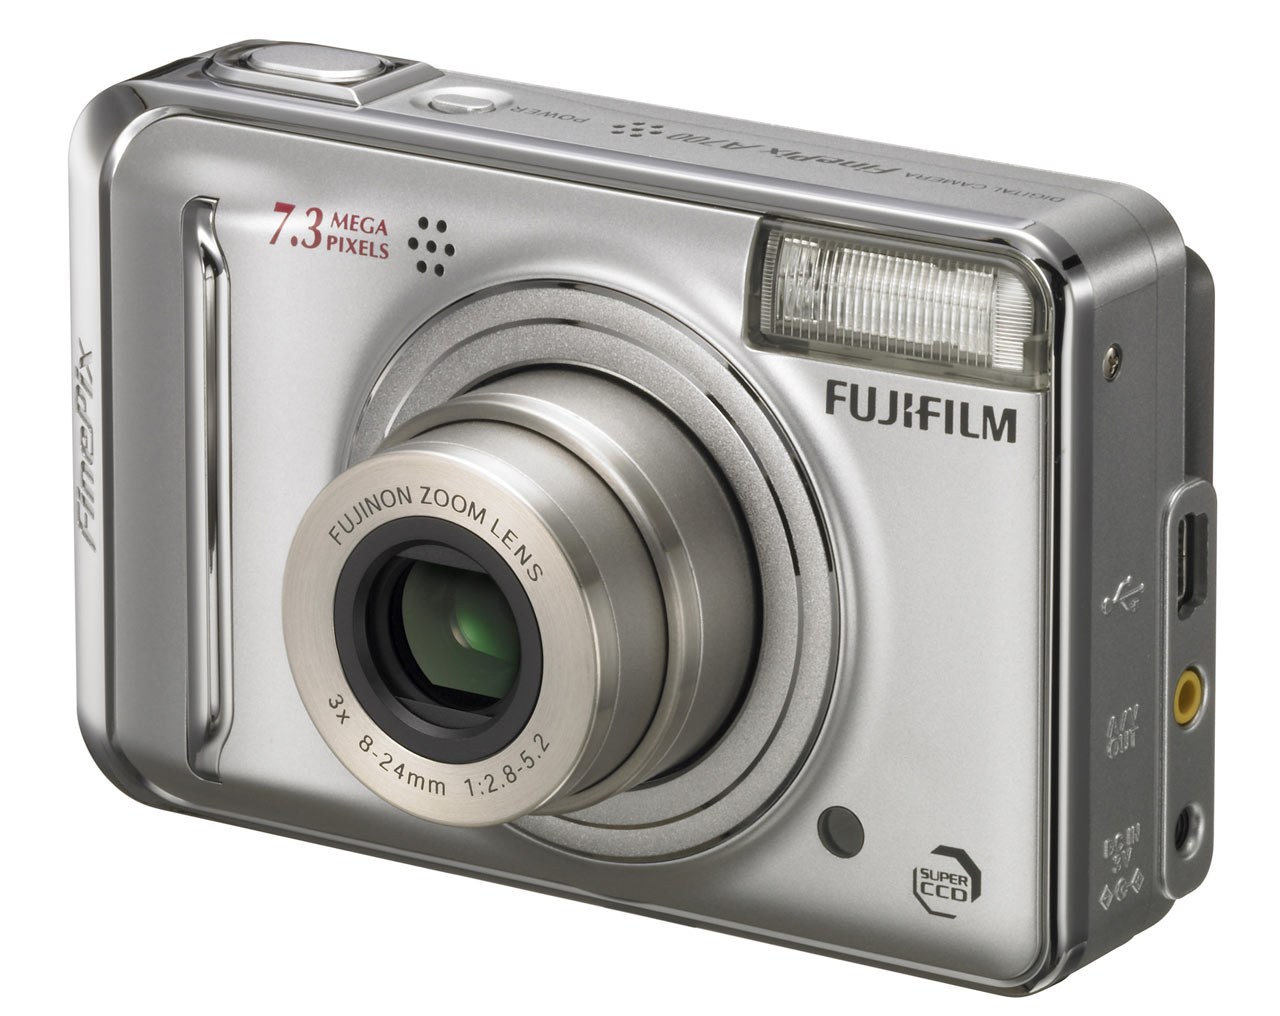 Fujifilm FinePix A700 specifications